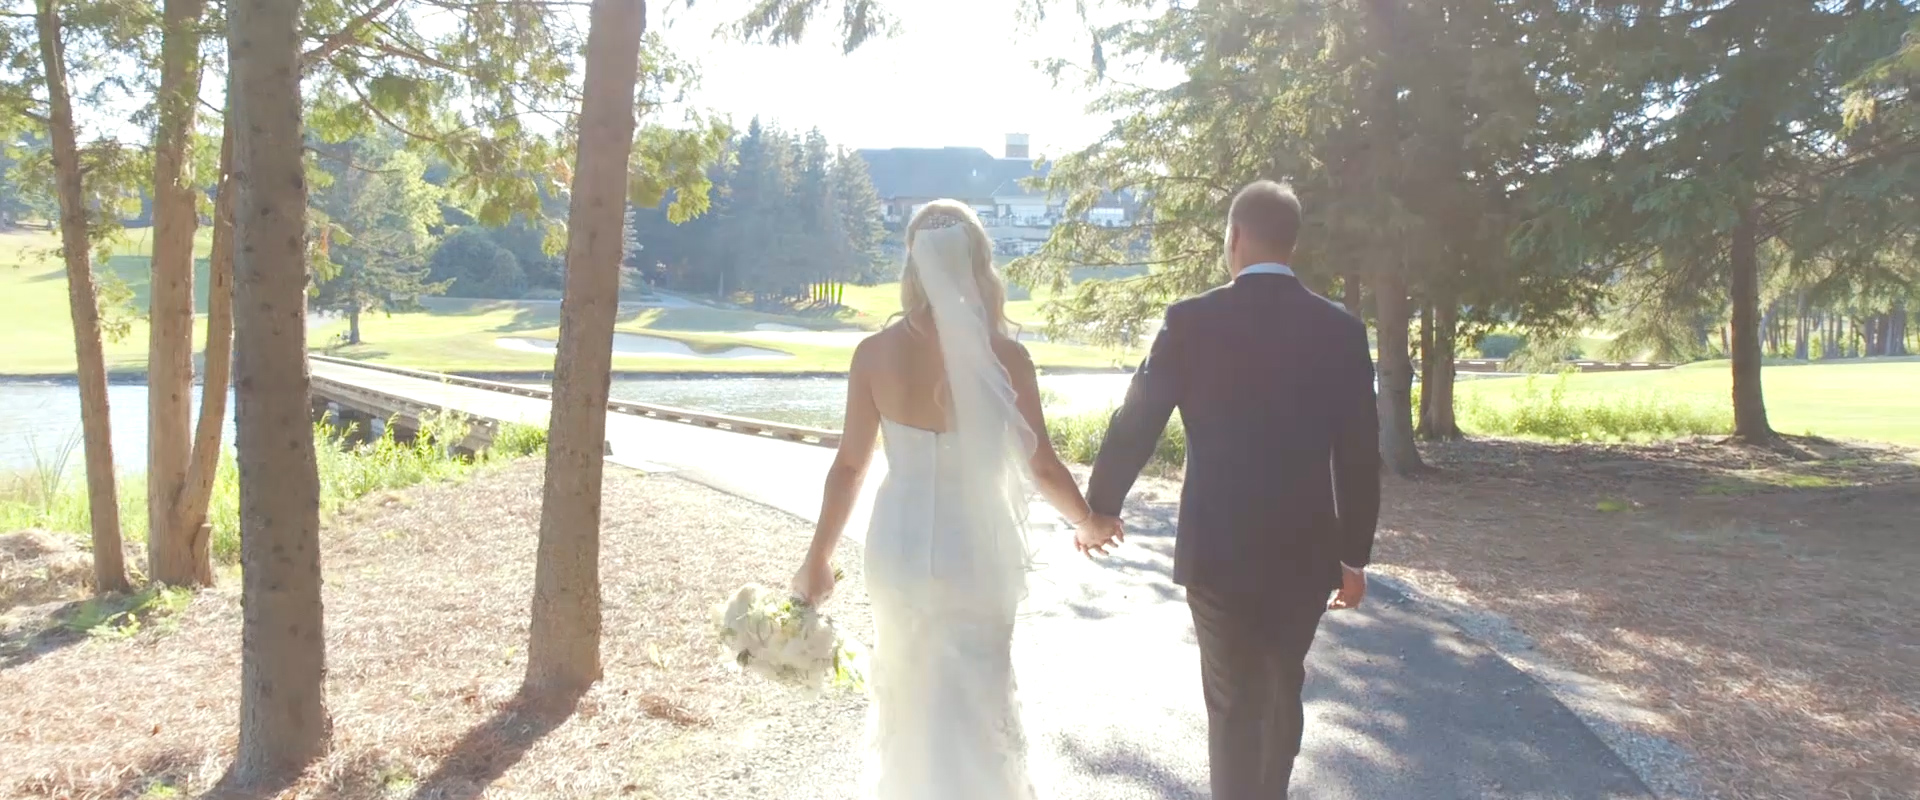 An image of a bride and groom walking down a path at King Valley Gold course; taken from a Toronto Wedding Video